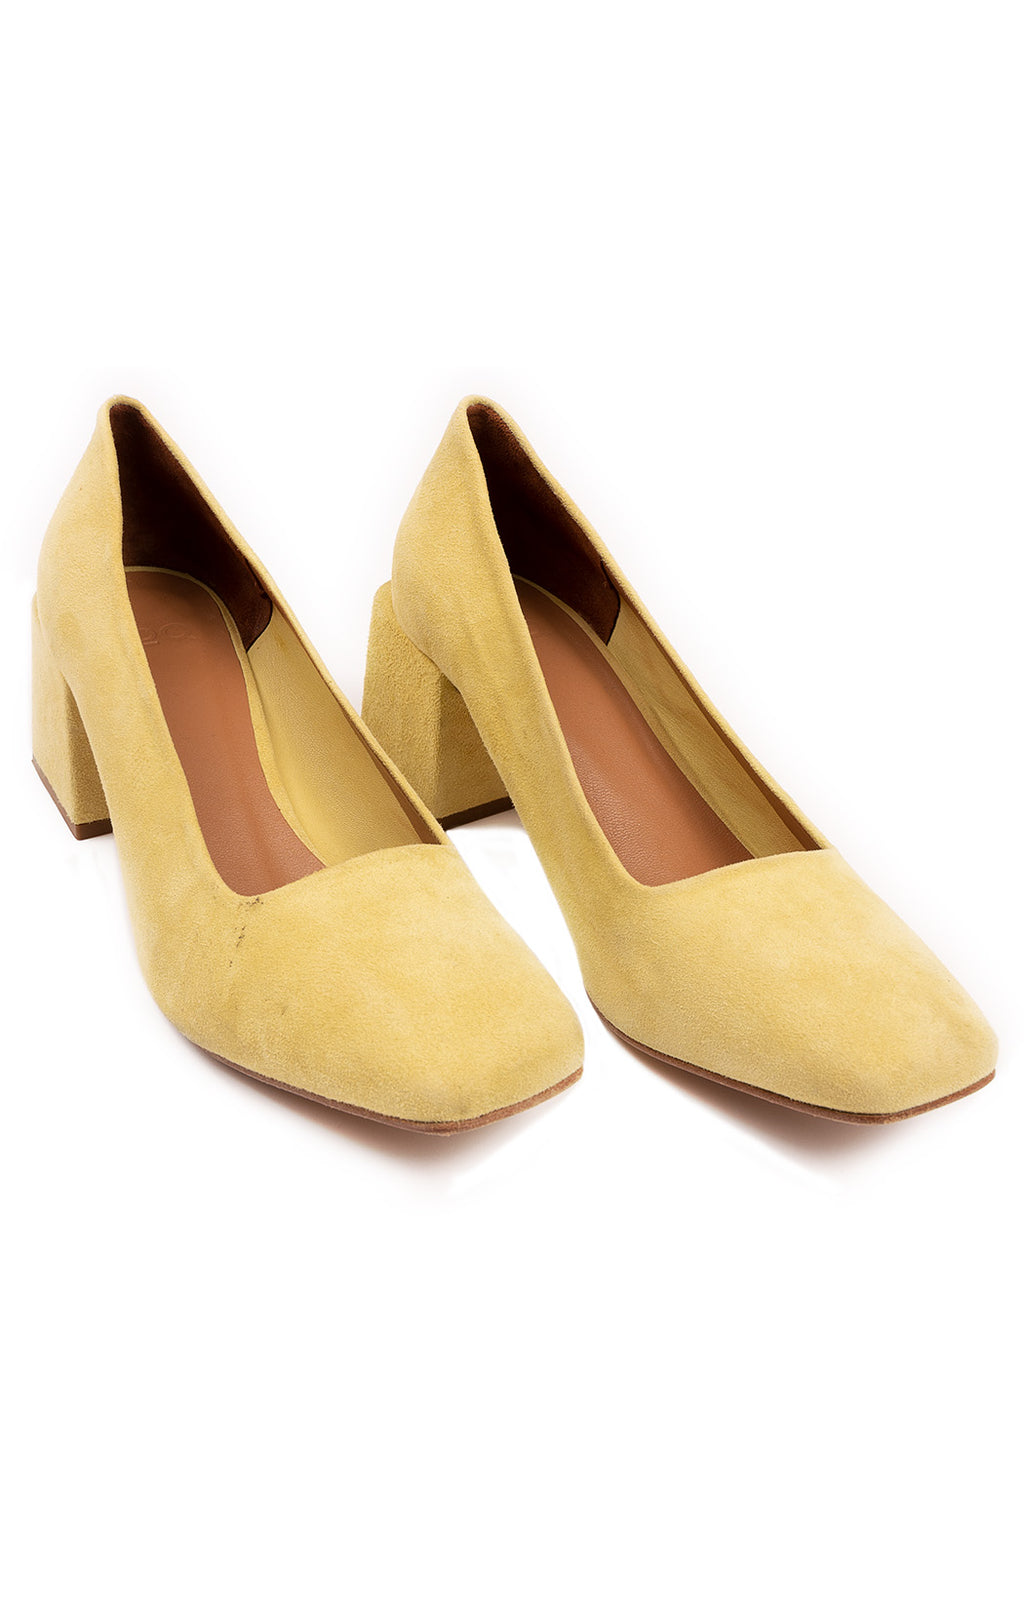 Yellow suede square toe pumps with 3.5 block heel